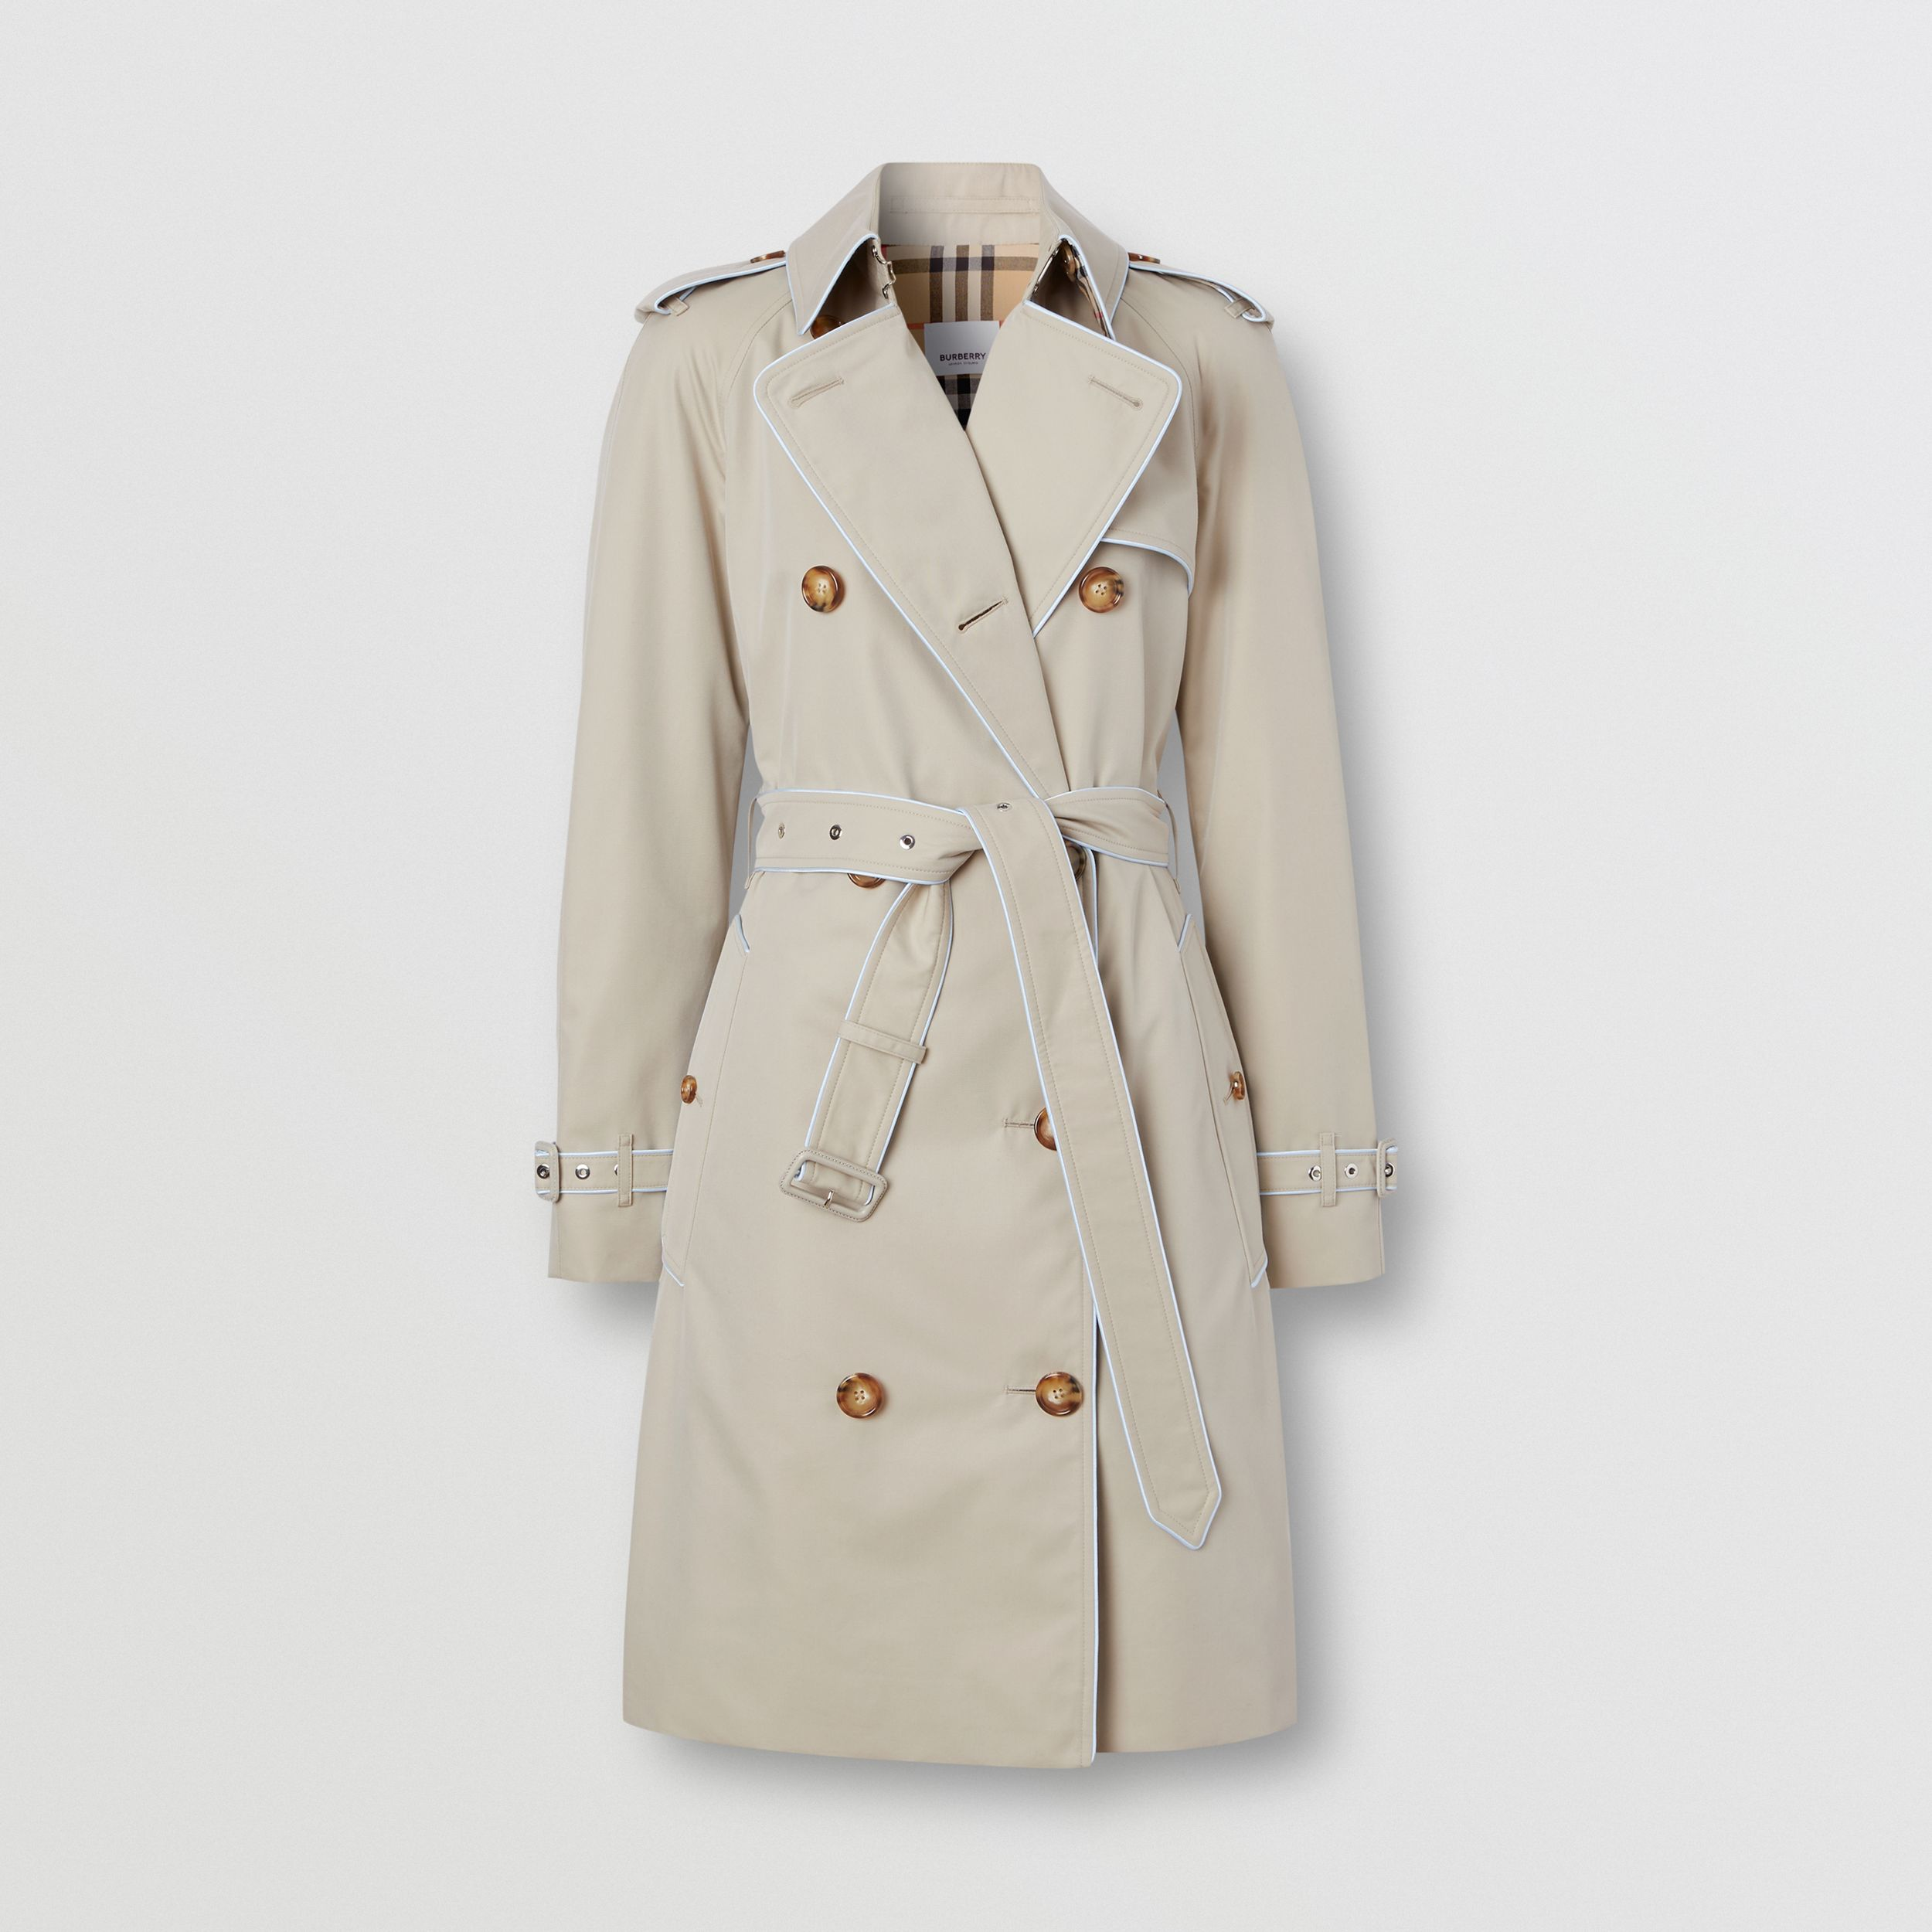 Piped Cotton Gabardine Trench Coat in Stone - Women | Burberry - 4